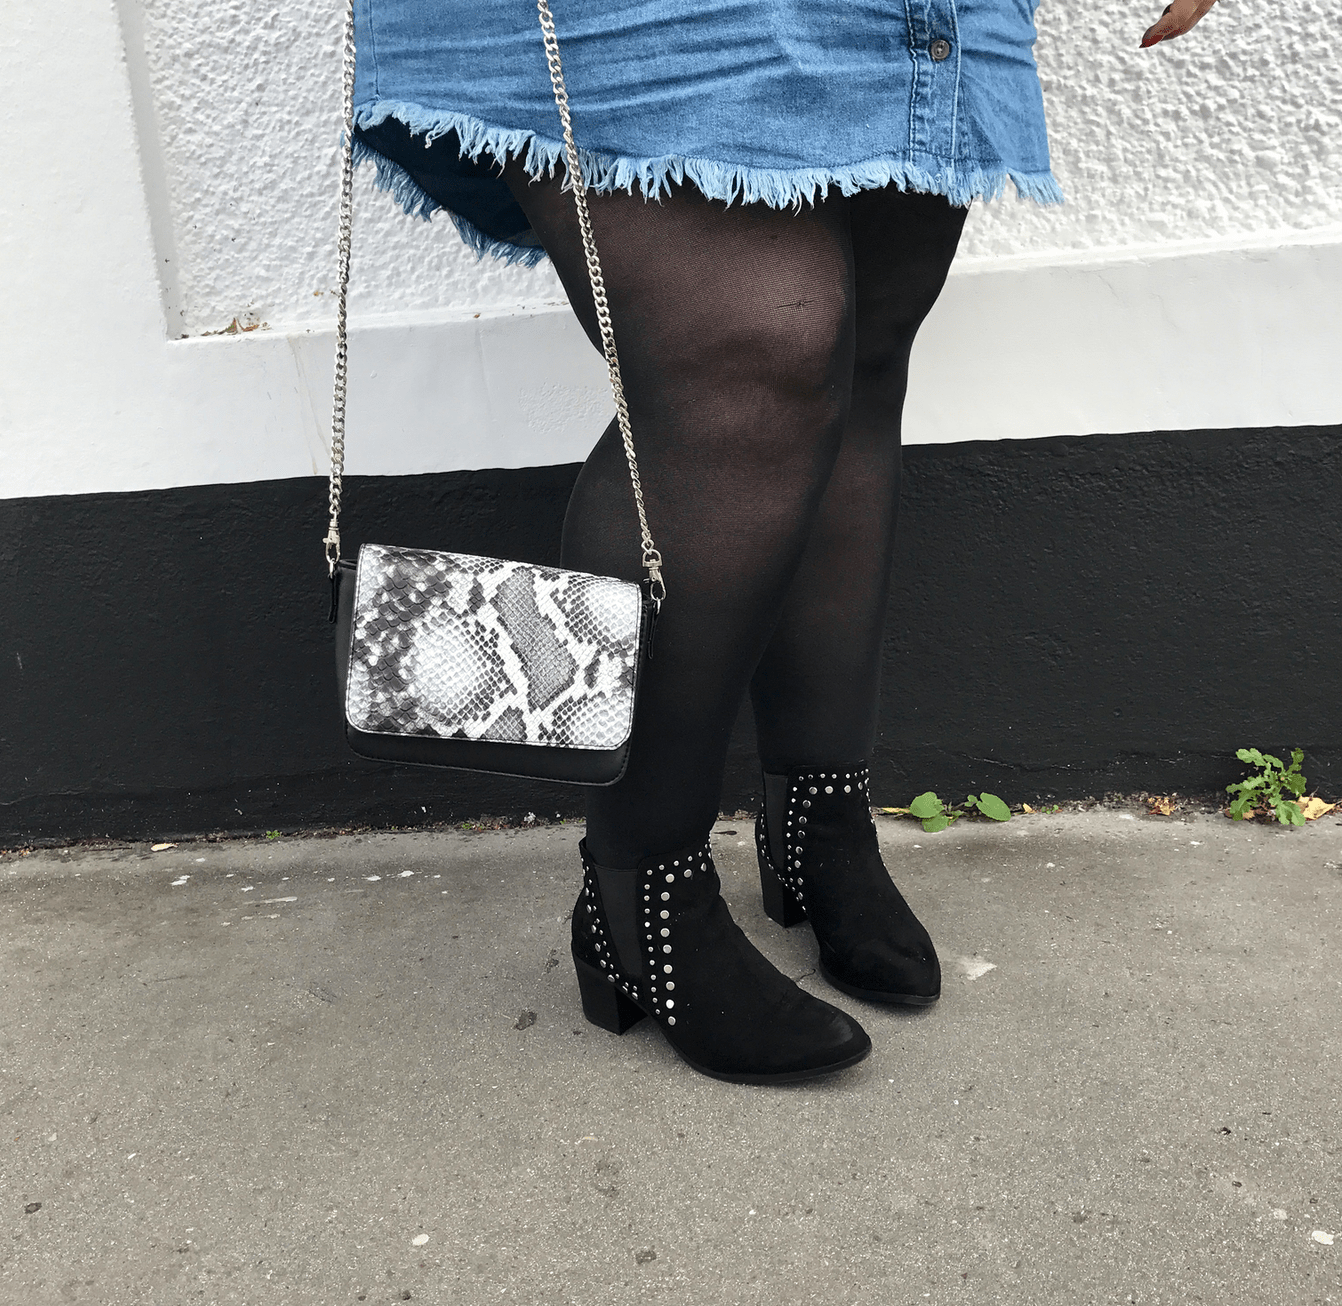 wide fit studded ankle boots and interchangeable bag - plus size outfit accessories - pretty big butterflies